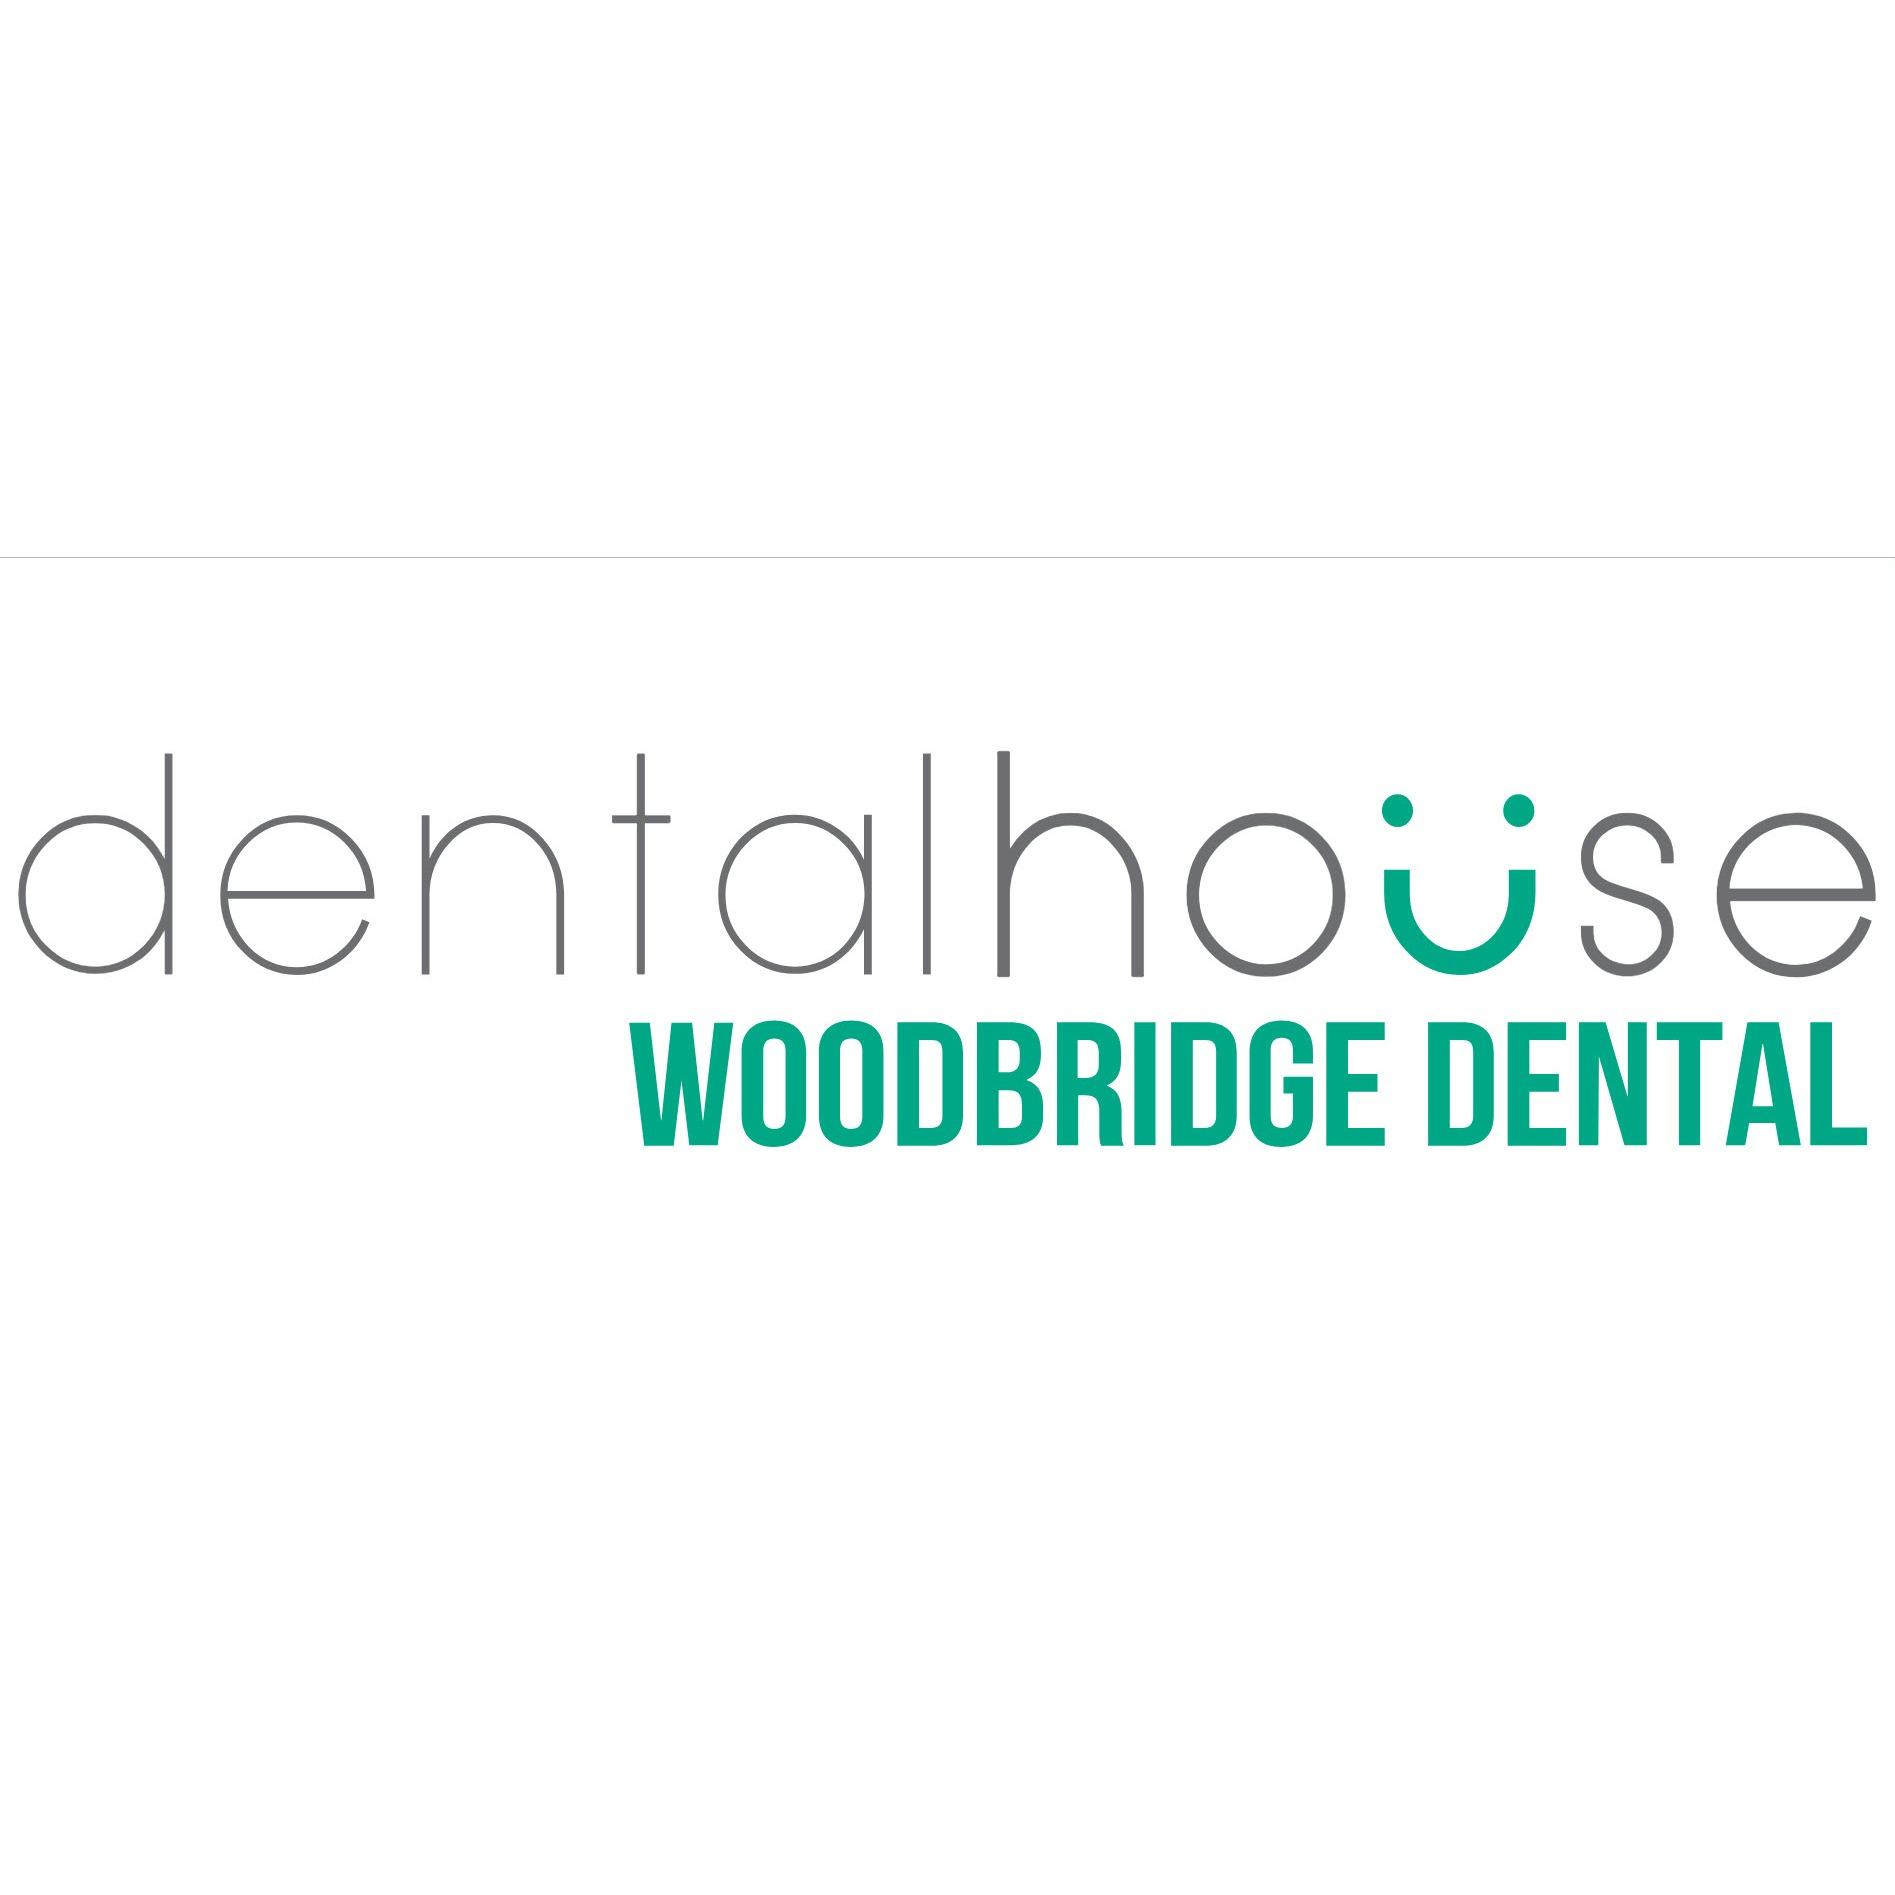 dentalhouse - Woodbridge Dental